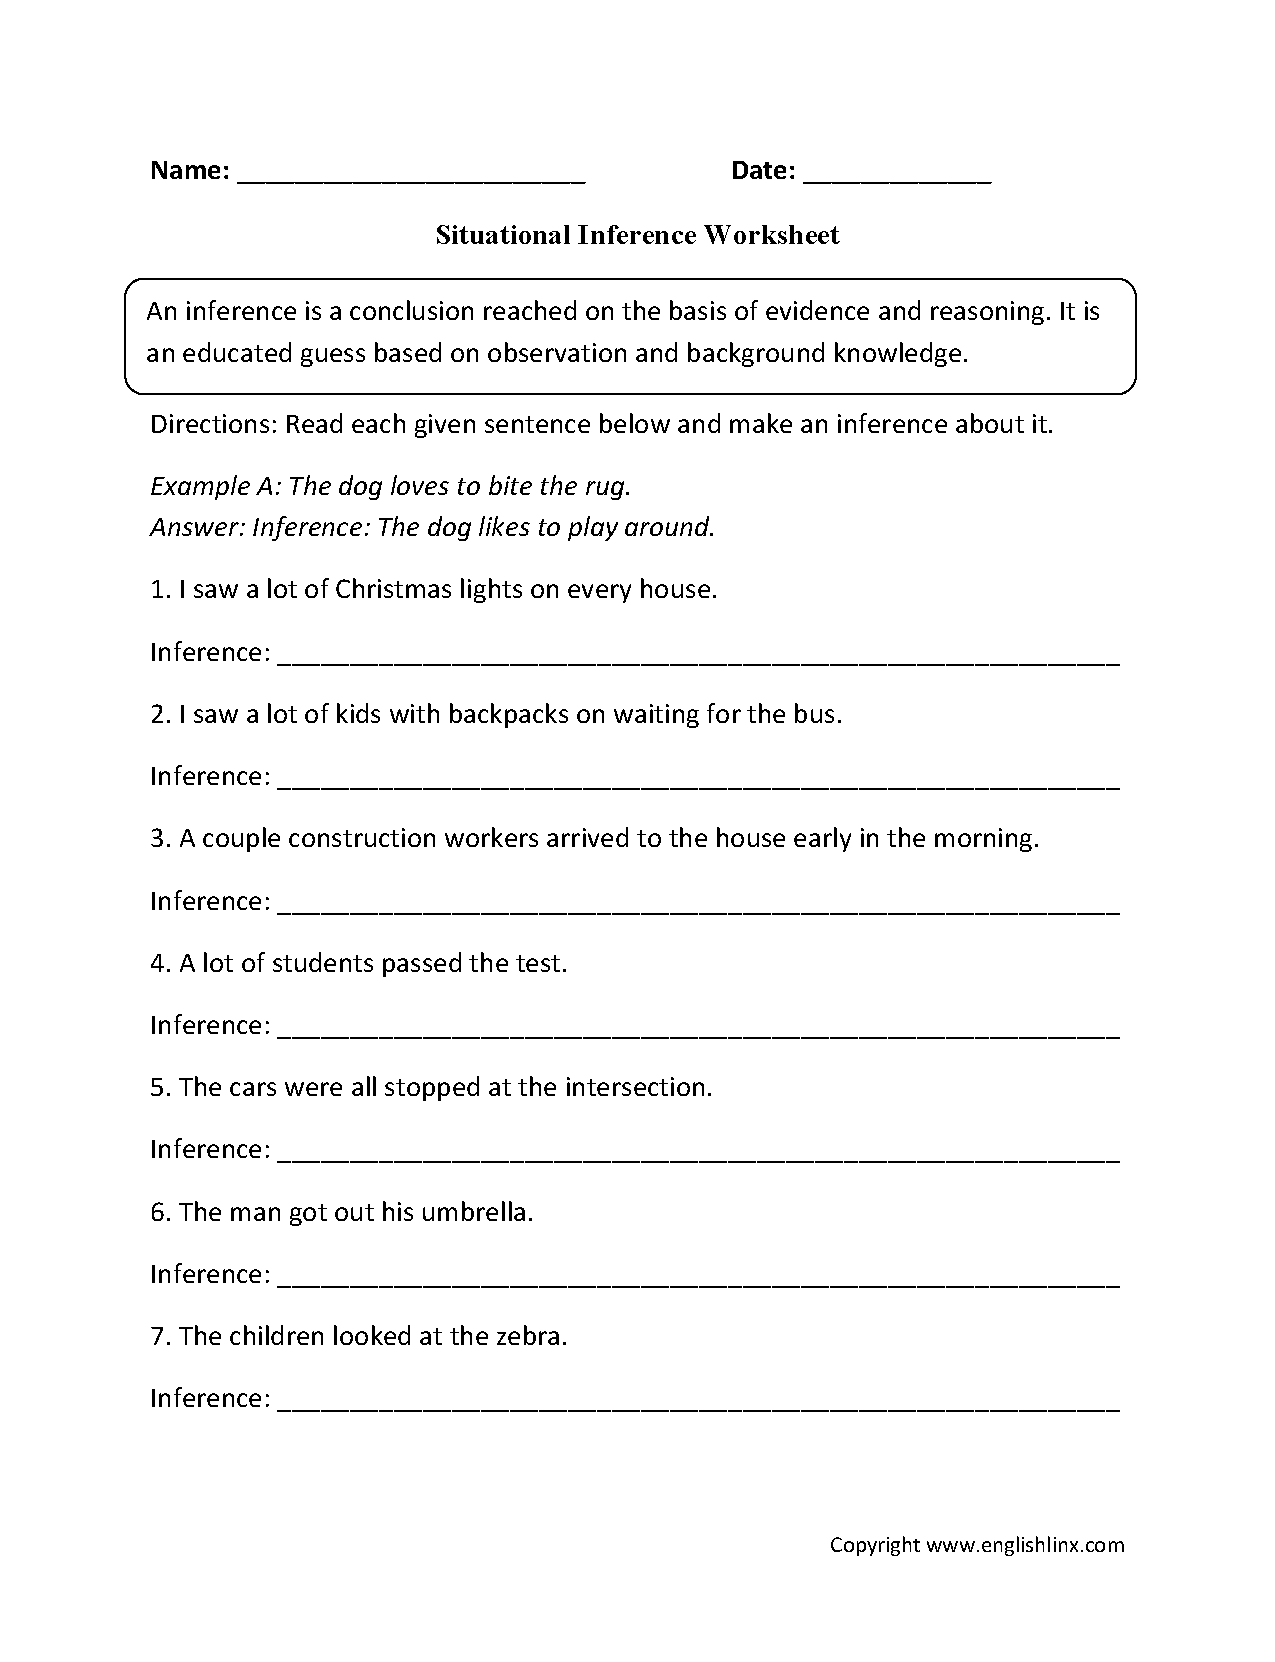 Situational Inference Worksheets   Reading comprehension worksheets [ 1662 x 1275 Pixel ]